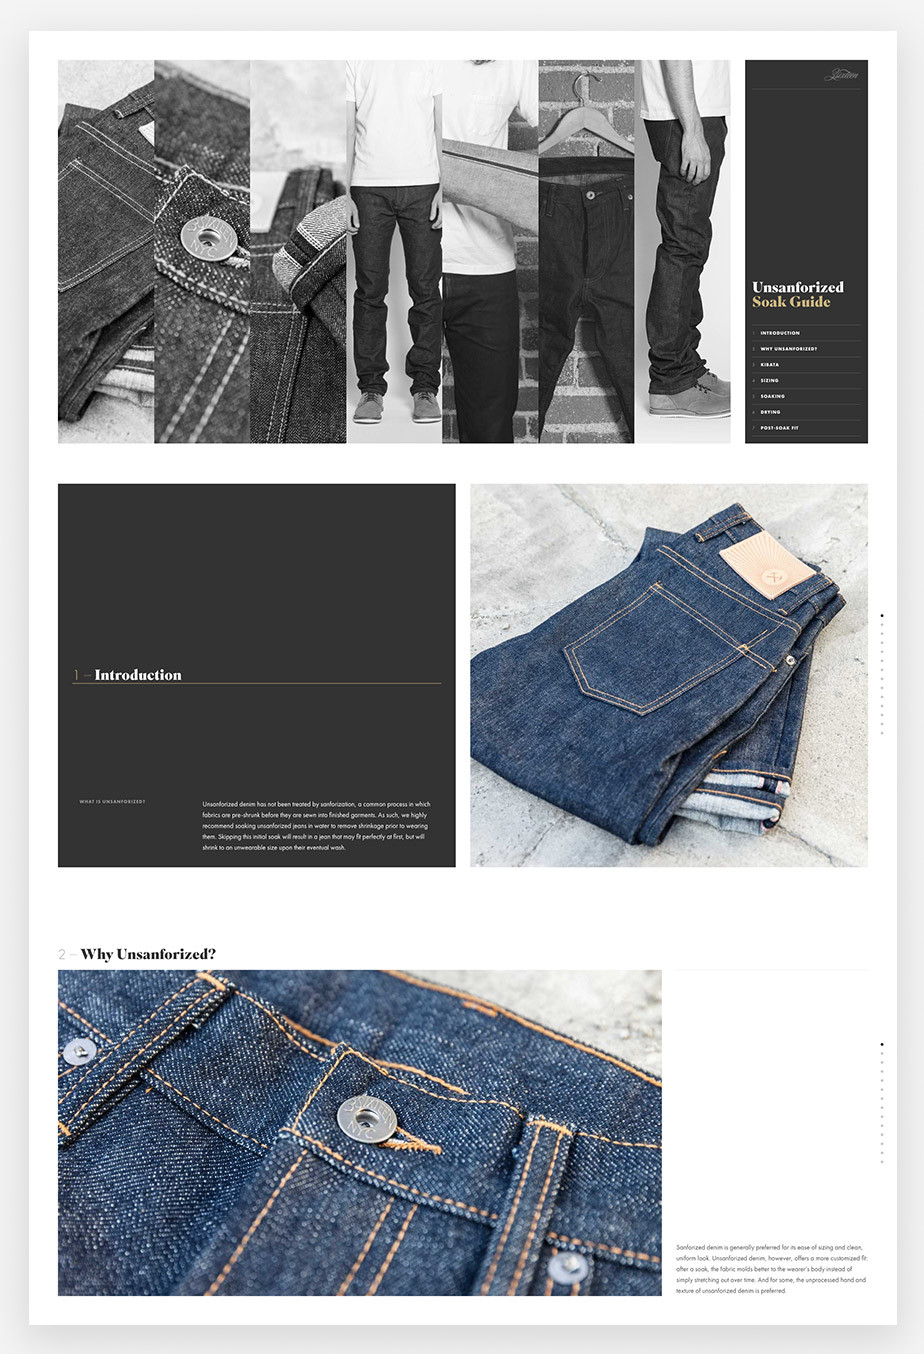 Landing page example by Unsanforized